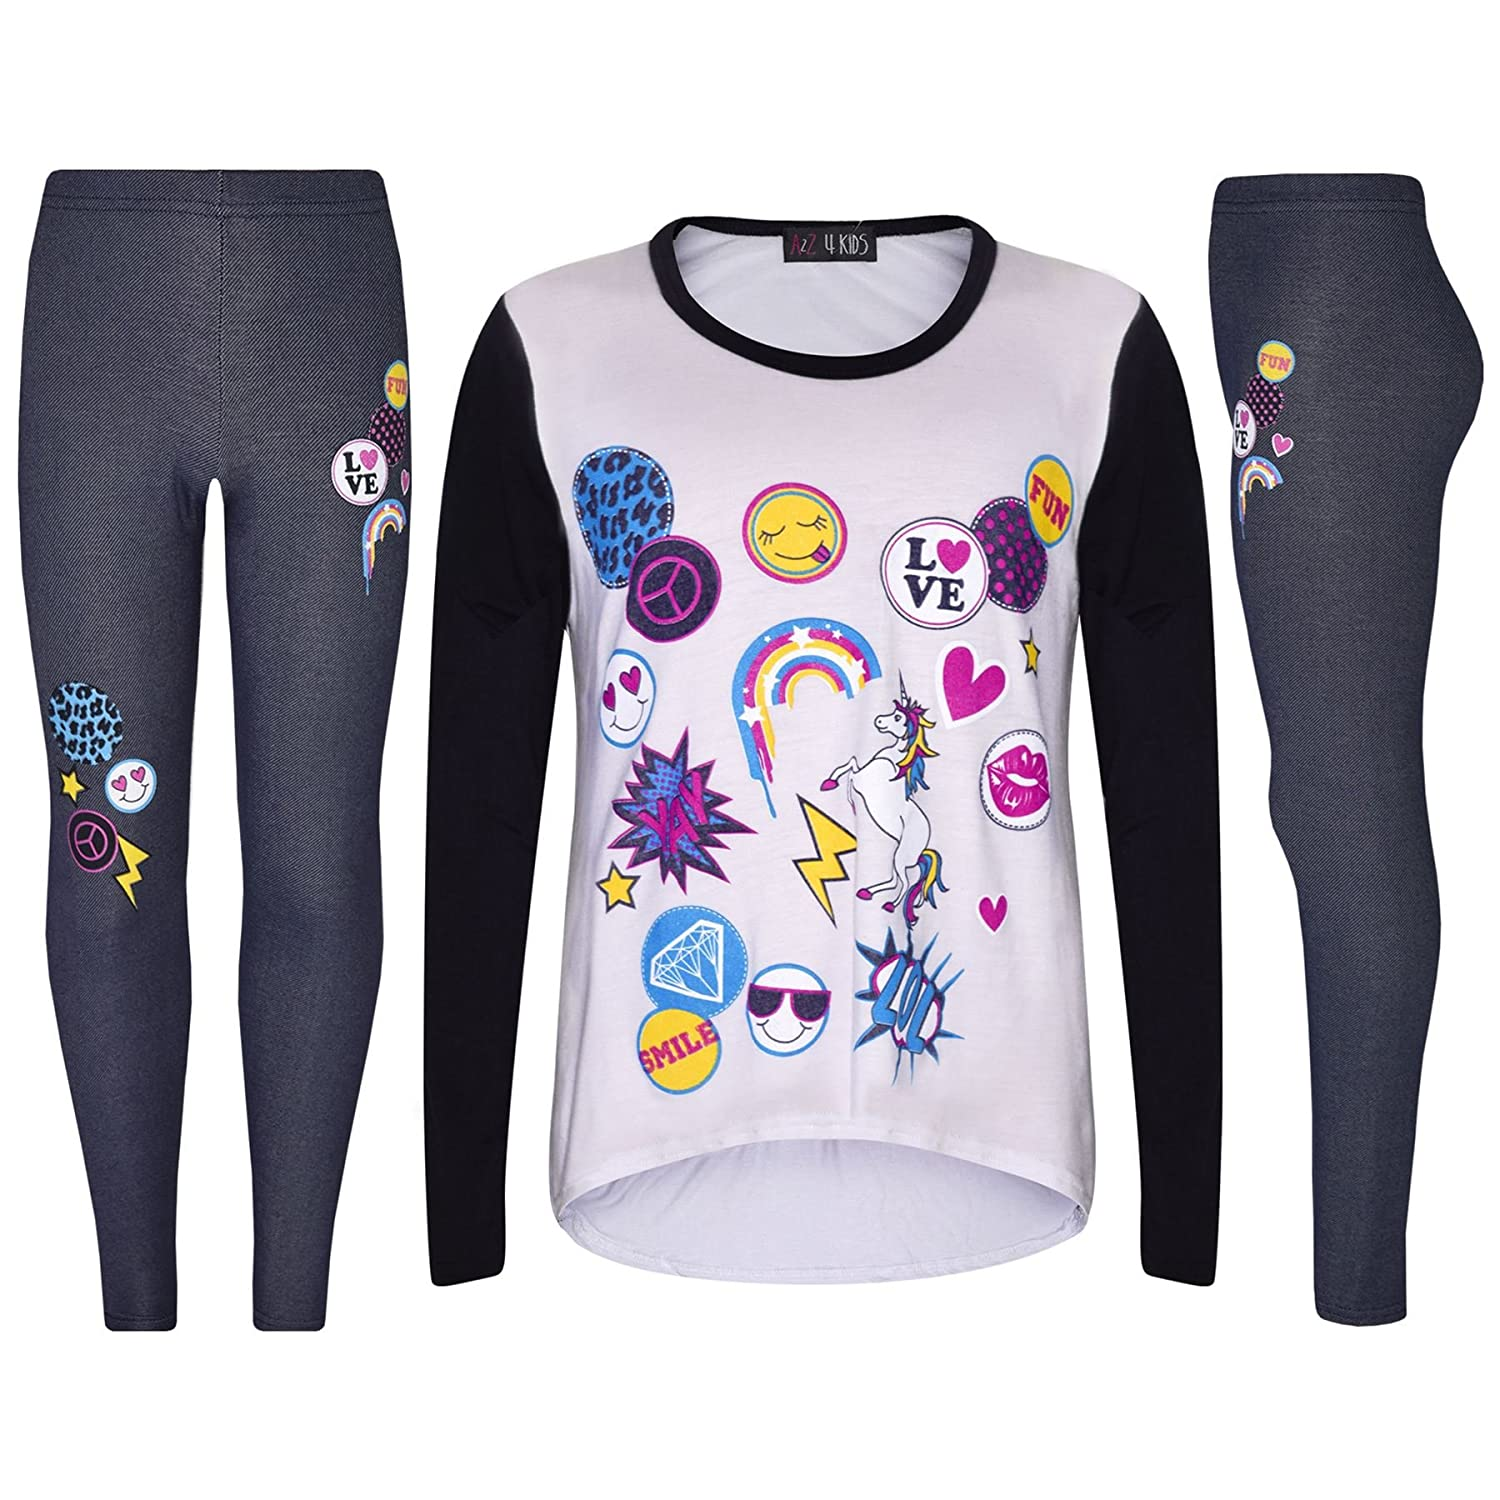 Girls Top Kids Unicorn Love Emojis Print T Shirt Tops & Jegging Set 7-13 Years